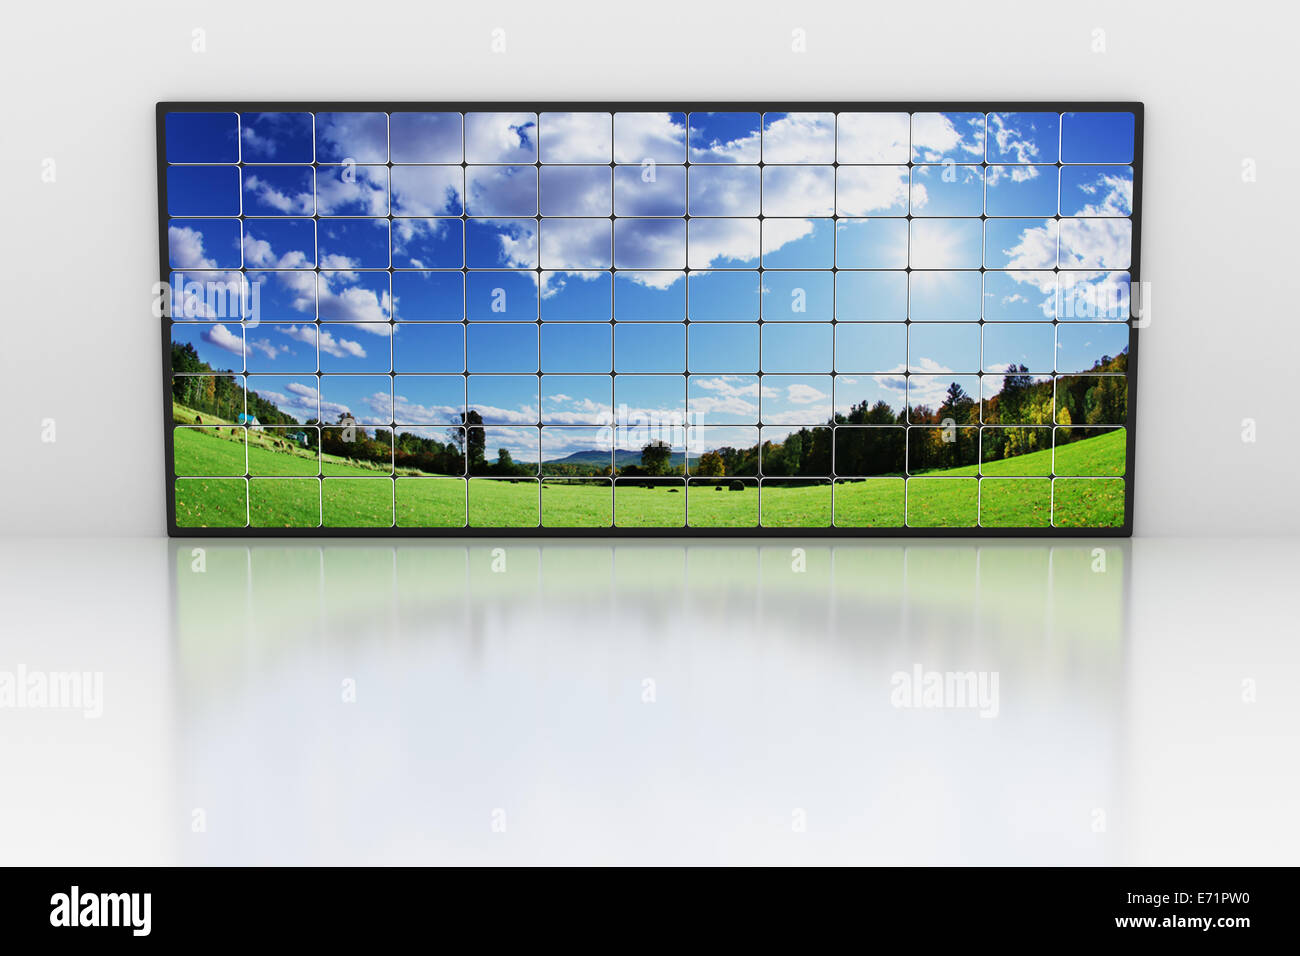 Wall of screens - Stock Image